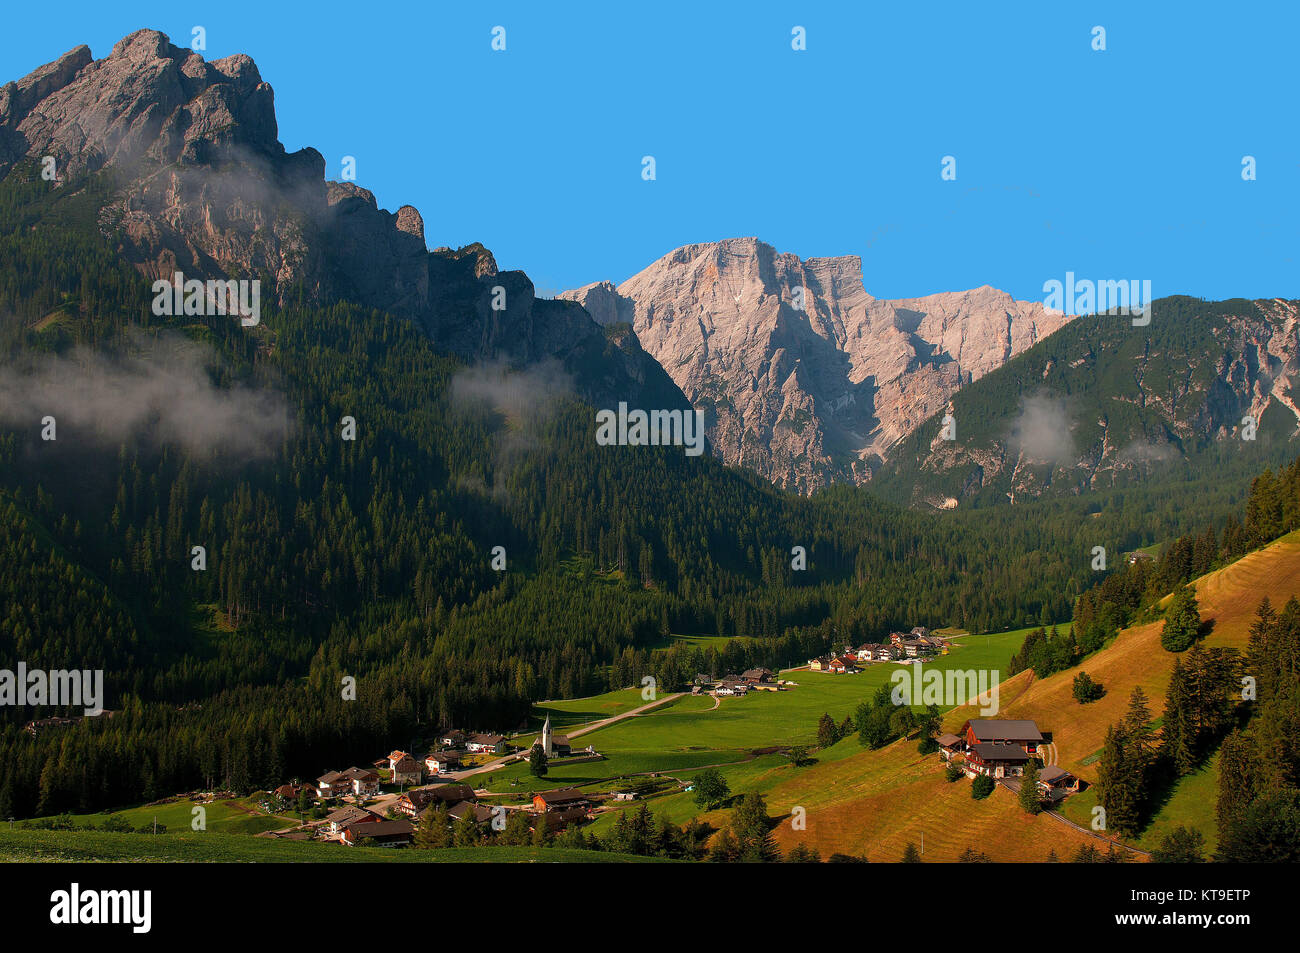 Prague Valley, Dolomites, South Tirol, Italy, Prague Dolomites, Nature Park Fanes-Sennes-Prague, Community St. Veit, - Stock Image